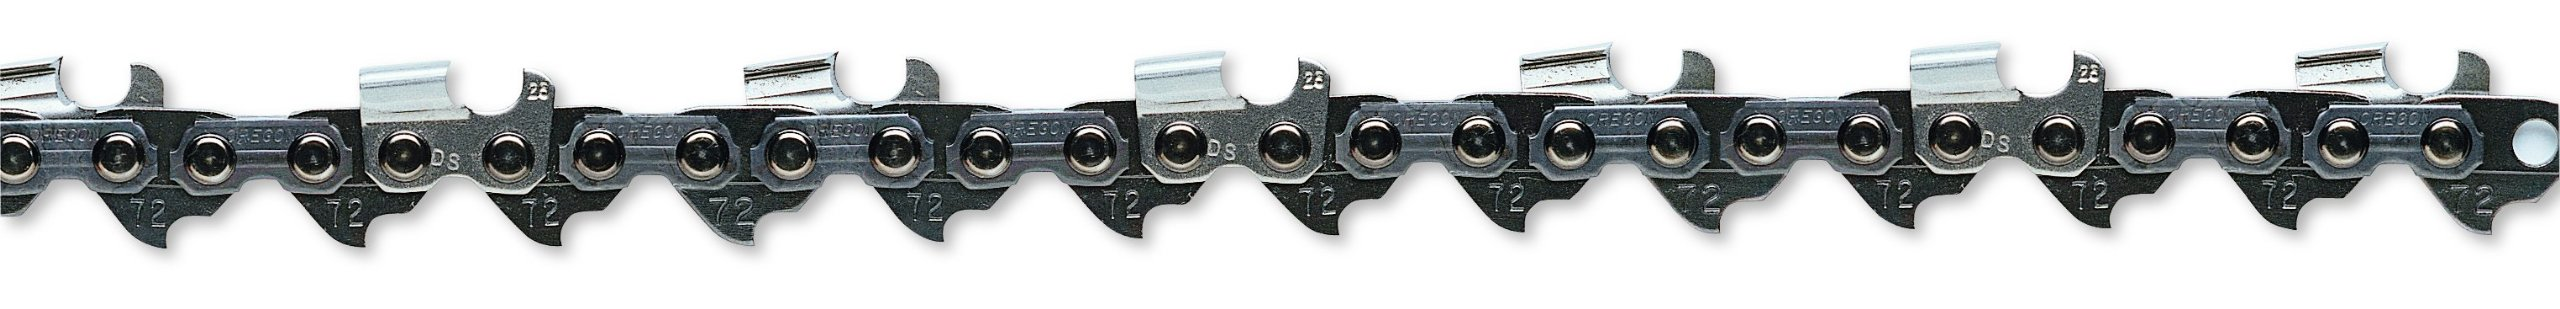 Oregon 72RD114G 114 Drive Link 3/8-Inch Ripping Chain, Standard Sequence by Oregon